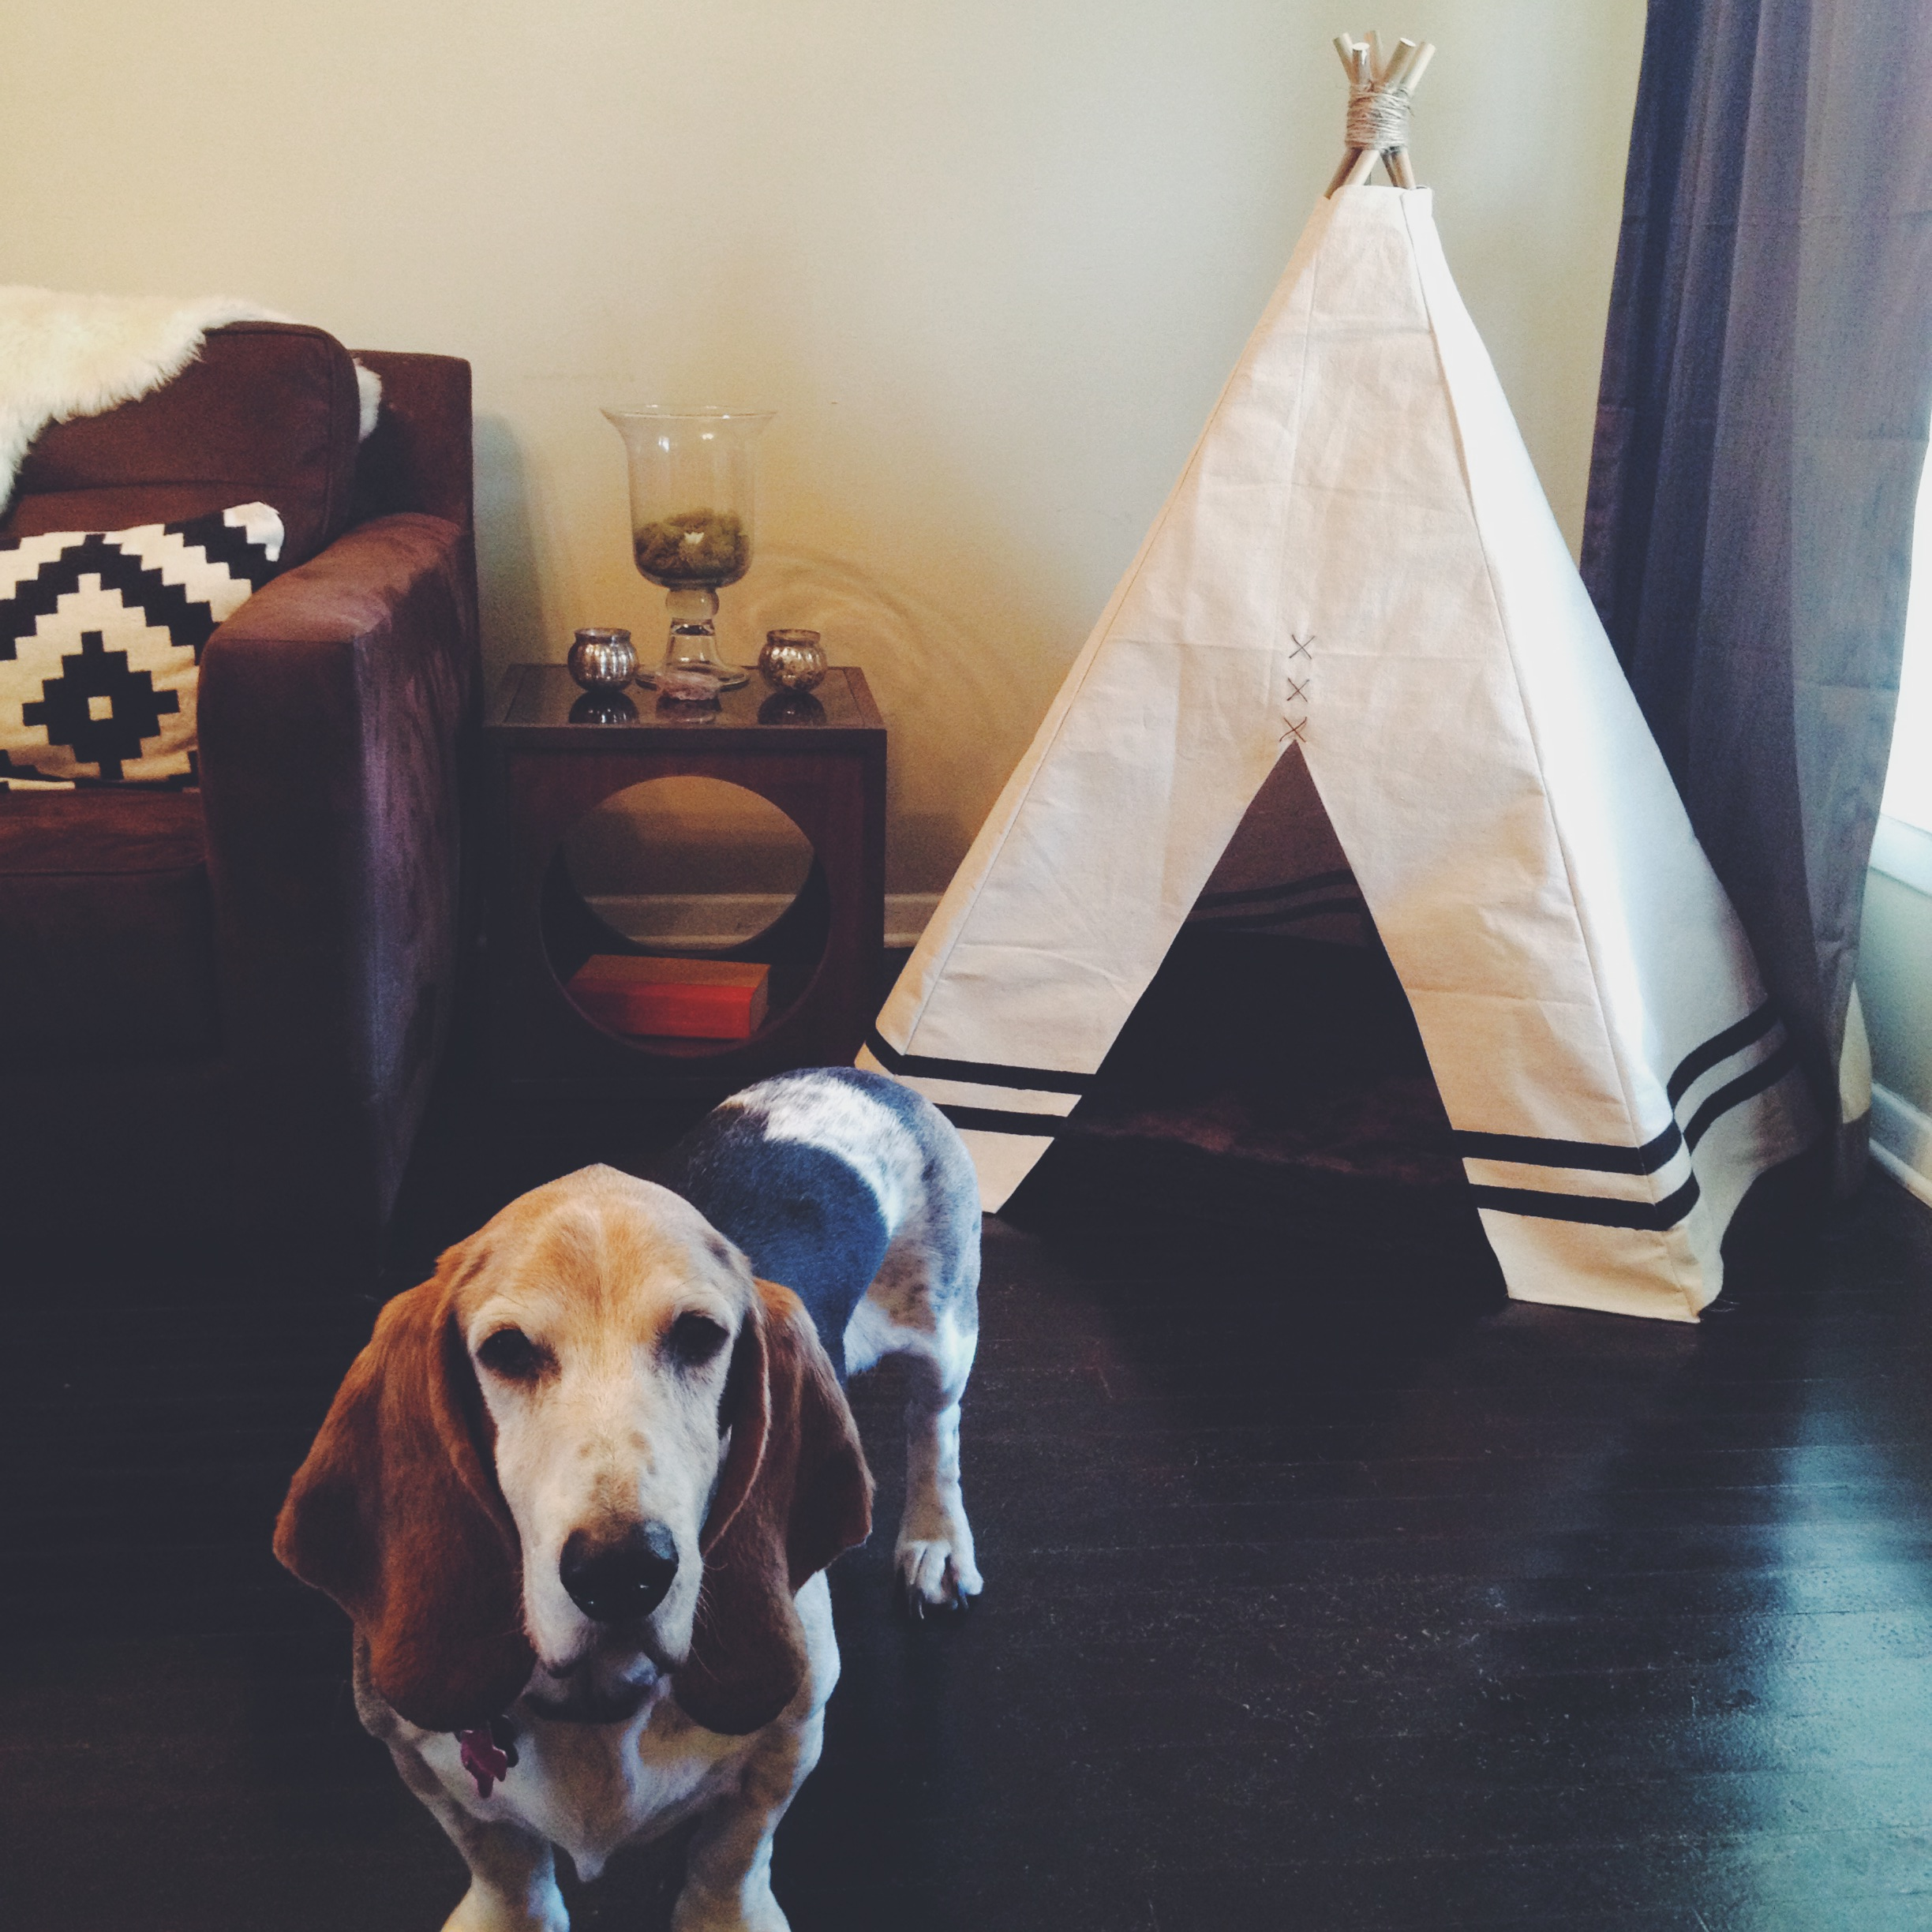 Processed with VSCOcam with f2 preset & dog tent | Love Is All You Knit